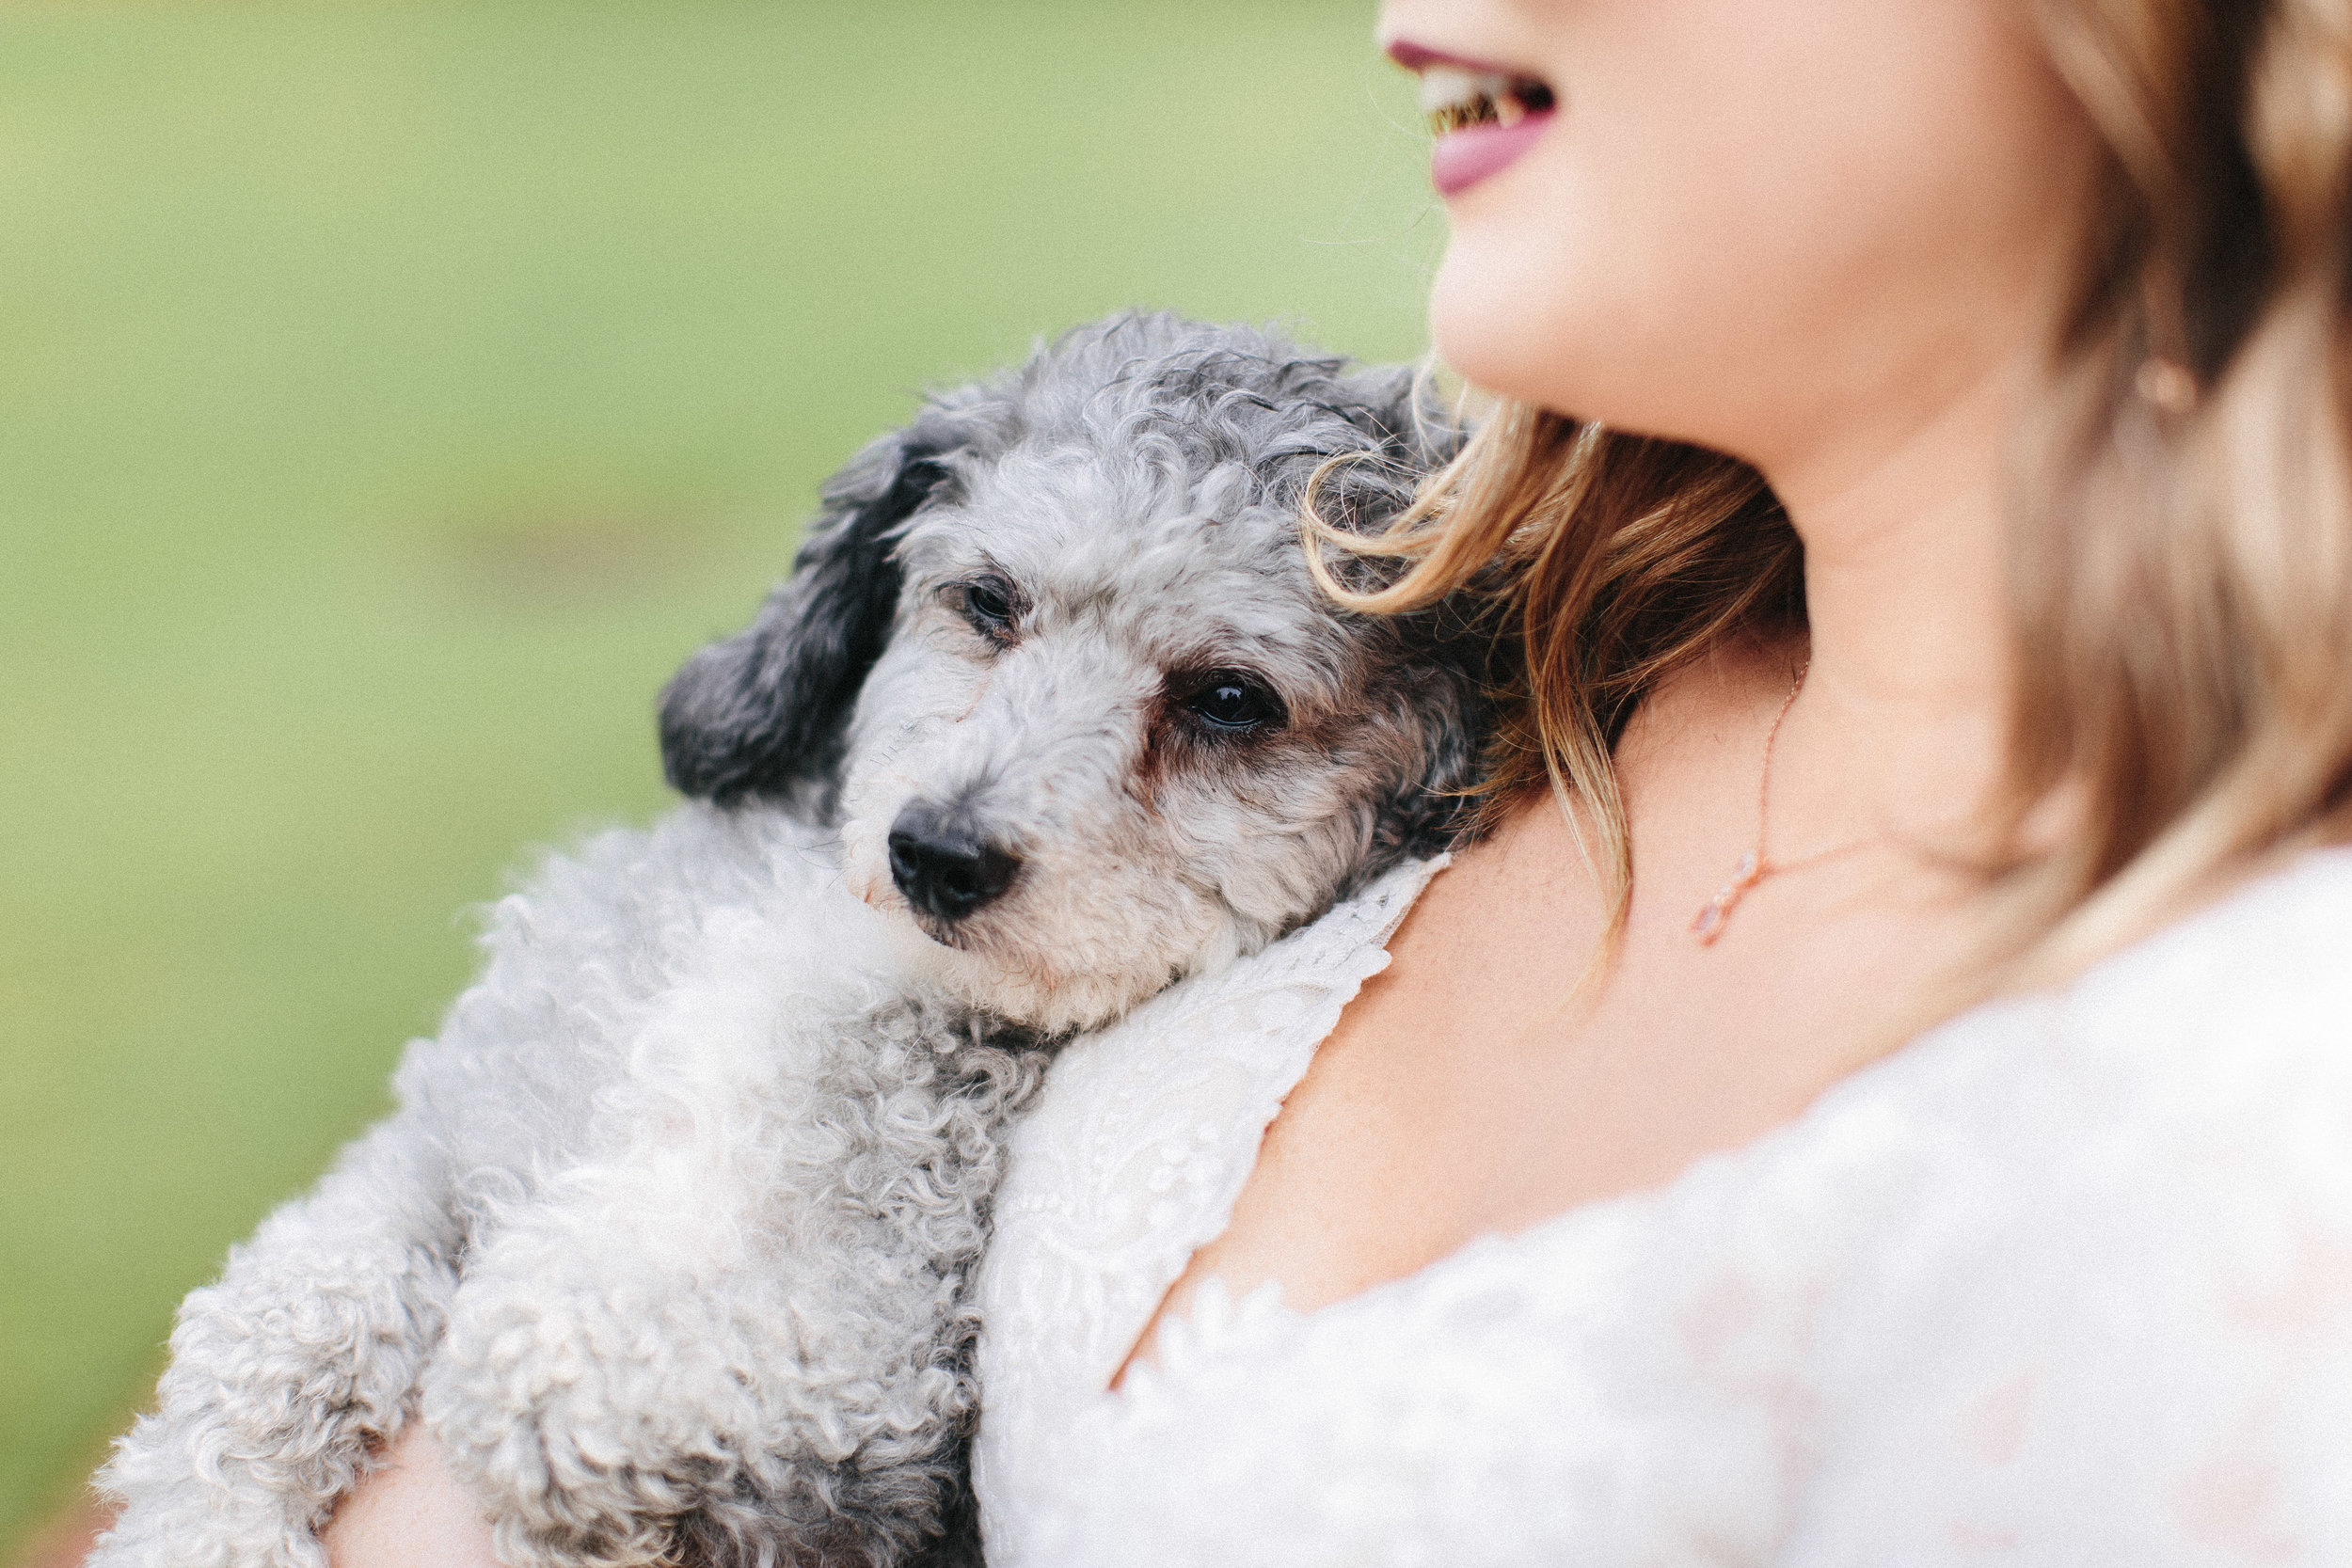 newnan_georgia_elegant_rainy_park_elopement_dogs_pups_tiny_wedding_backless_dress_blue_suit_georgia_atlanta_photographer_1295.jpg